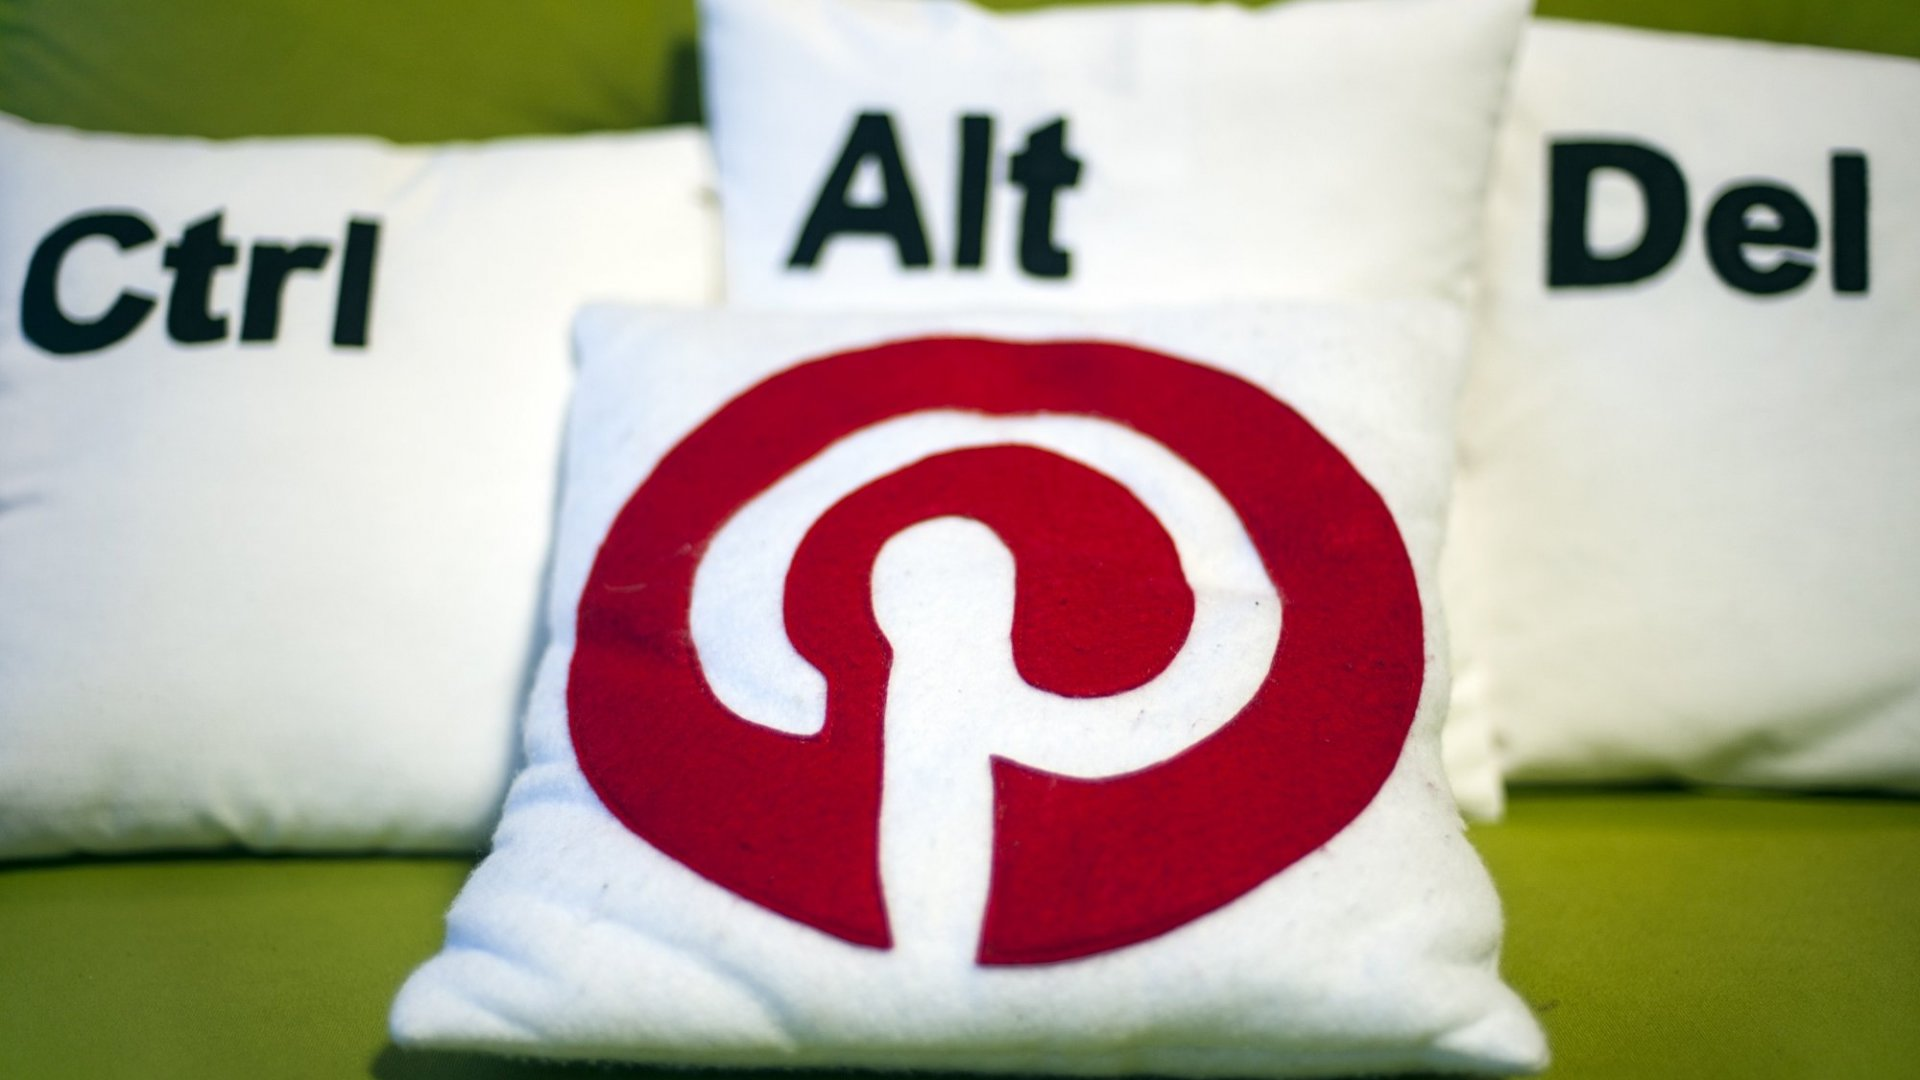 Pinterest Lowers Its Diversity Ambitions Despite Showing Gains in Latest Report